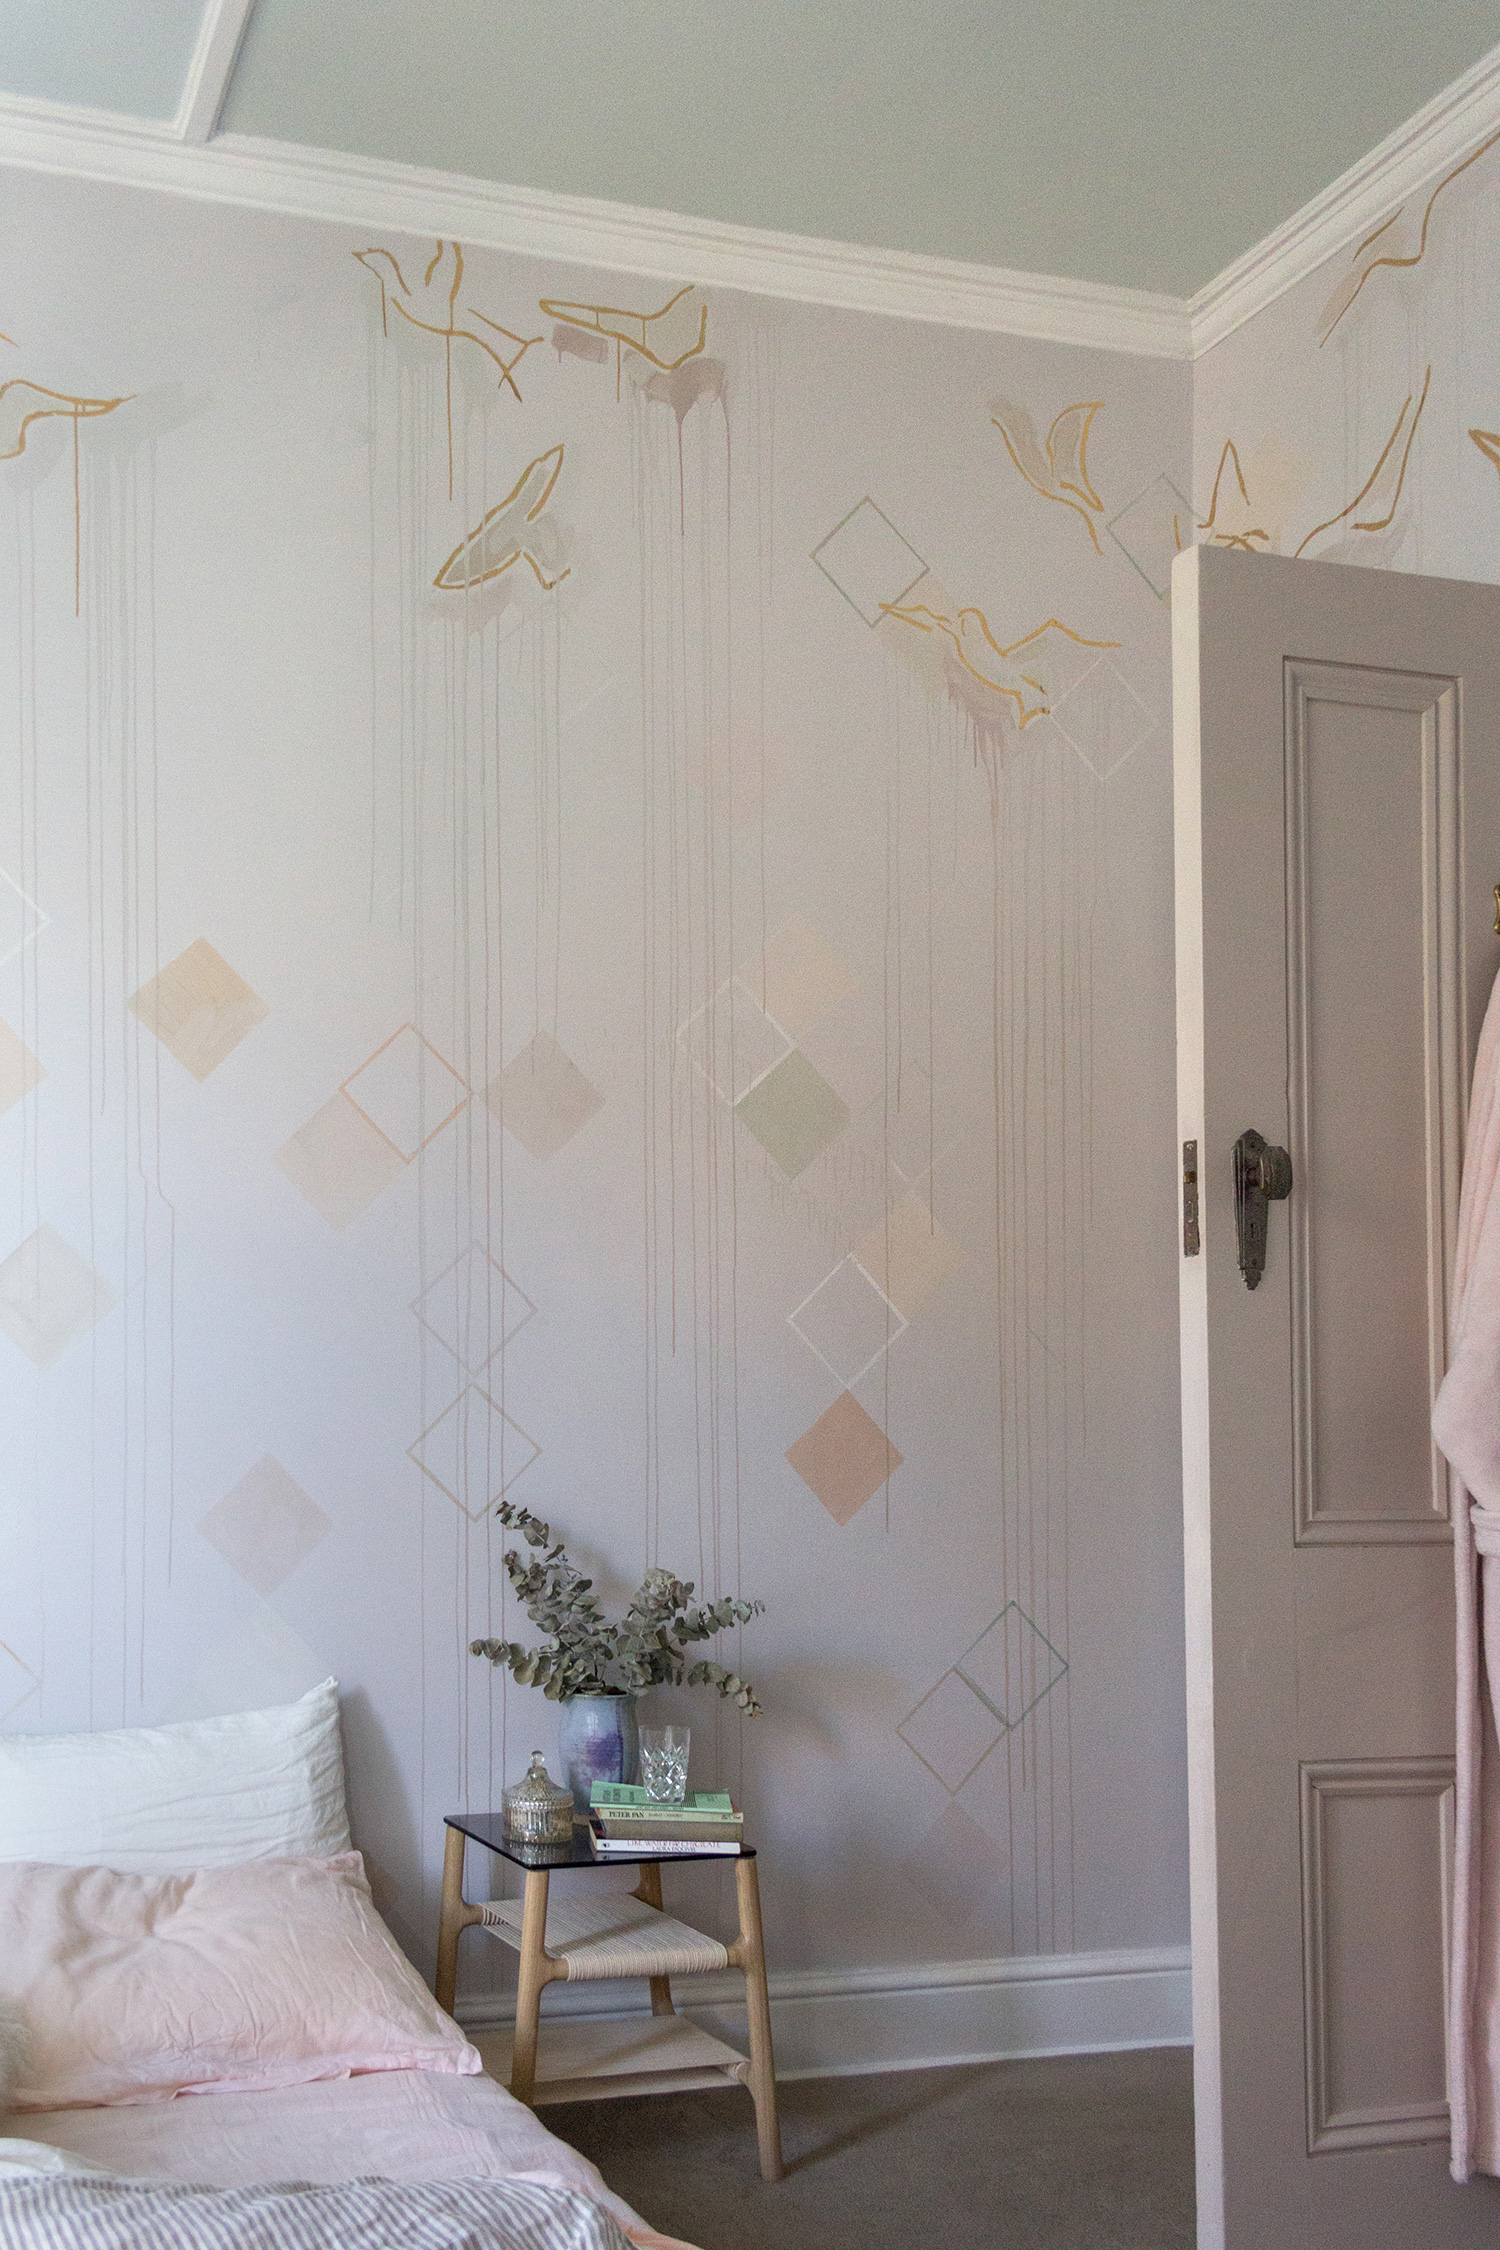 Pastel bedroom mural featuring geometric shapes, dripping paint and gold leaf birds flying. The bed is made with linen bedding and a soft, pink throw.